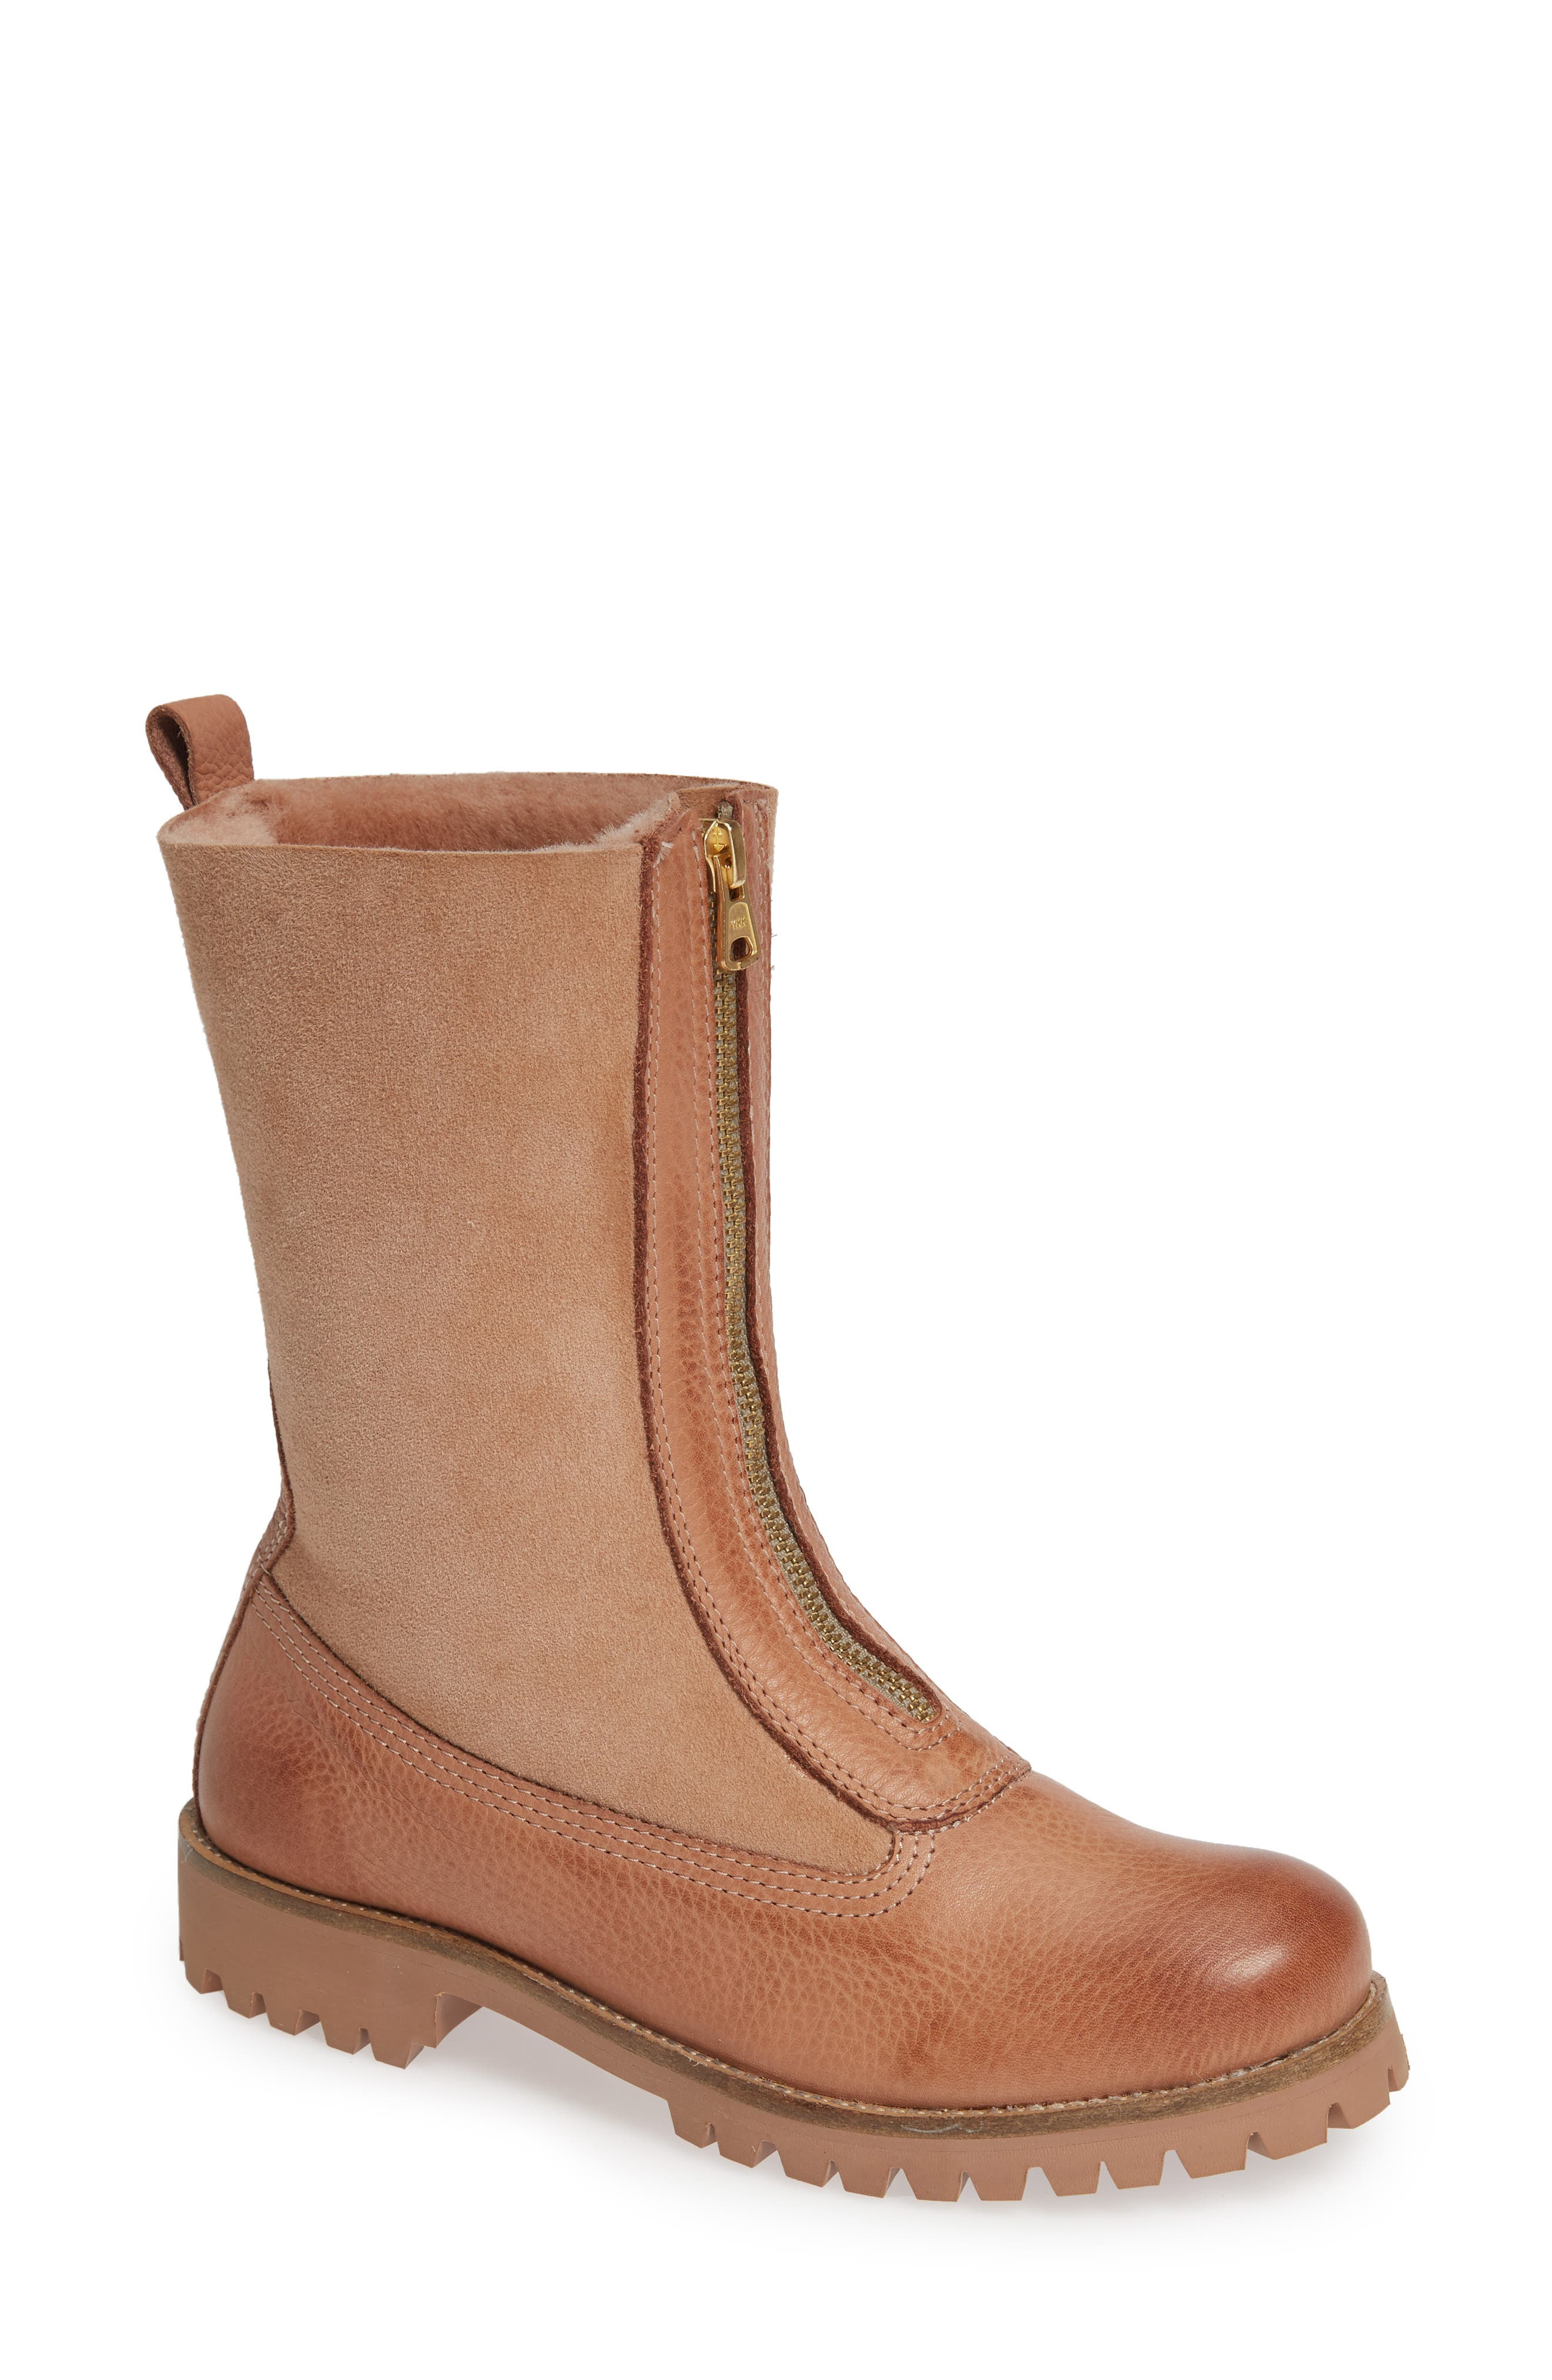 Blackstone Ql53 Genuine Shearling Lined Bootie, Beige